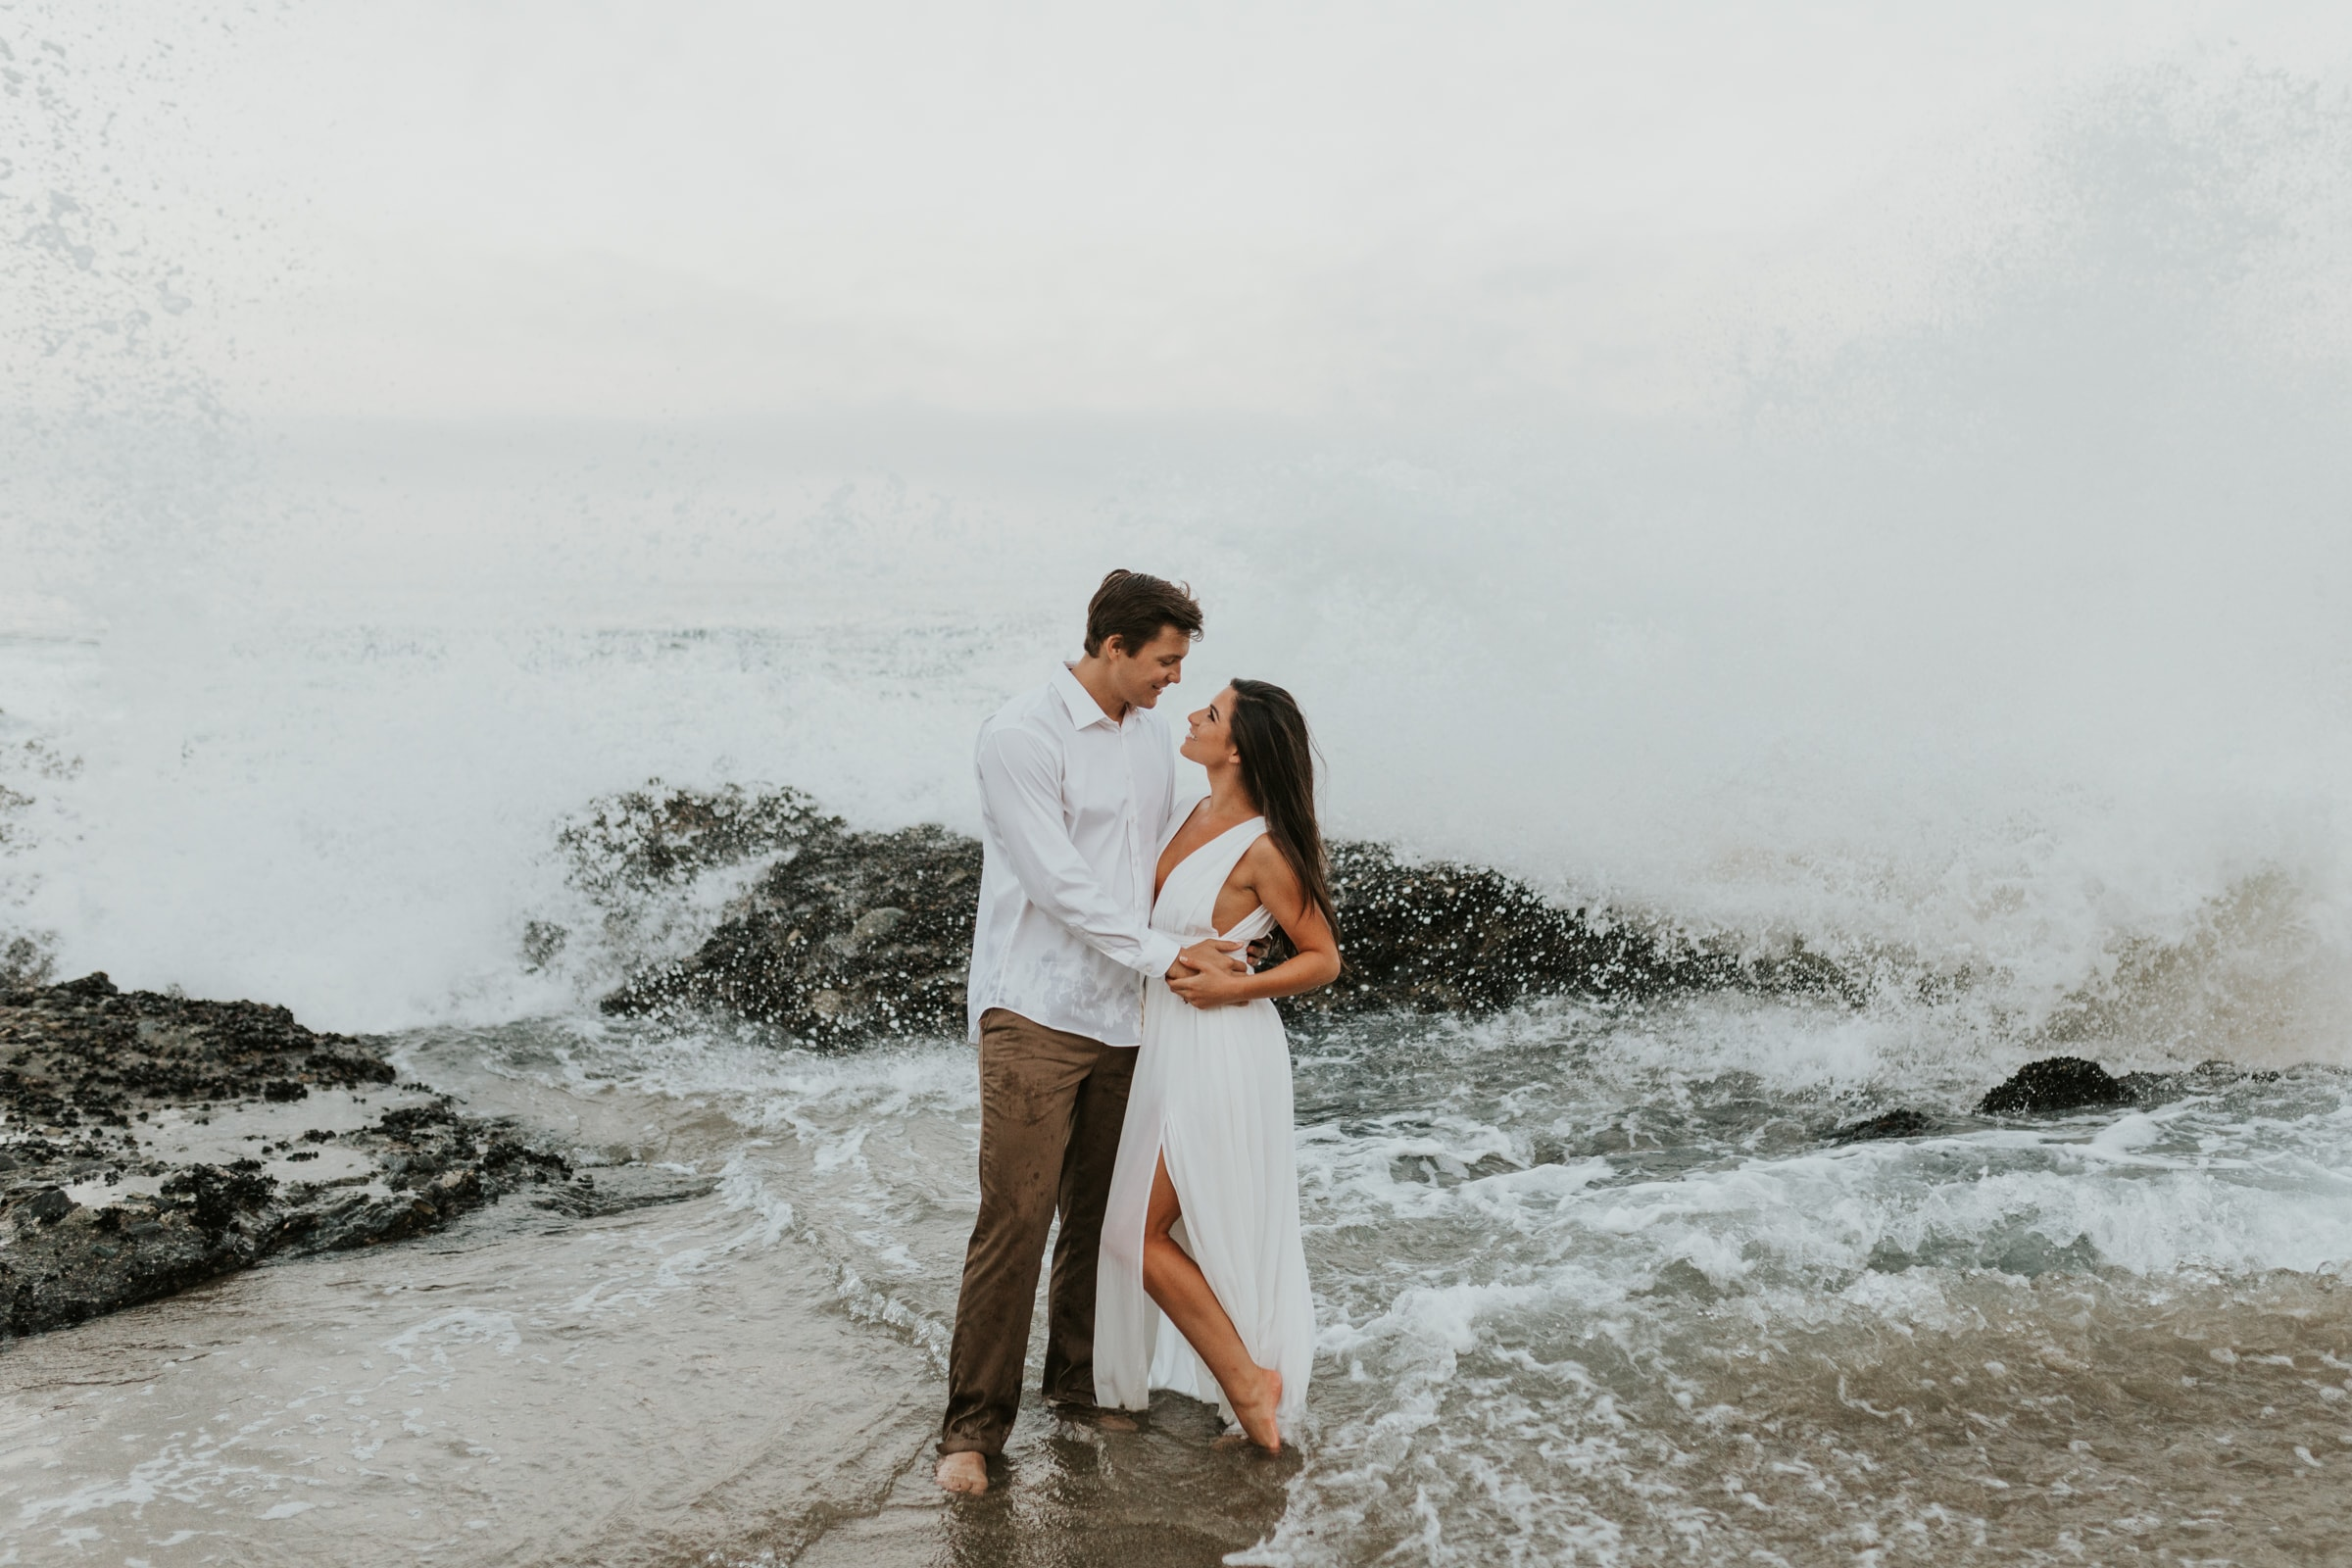 A couple looking at each other as a wave crashes behind them in Hawaii.